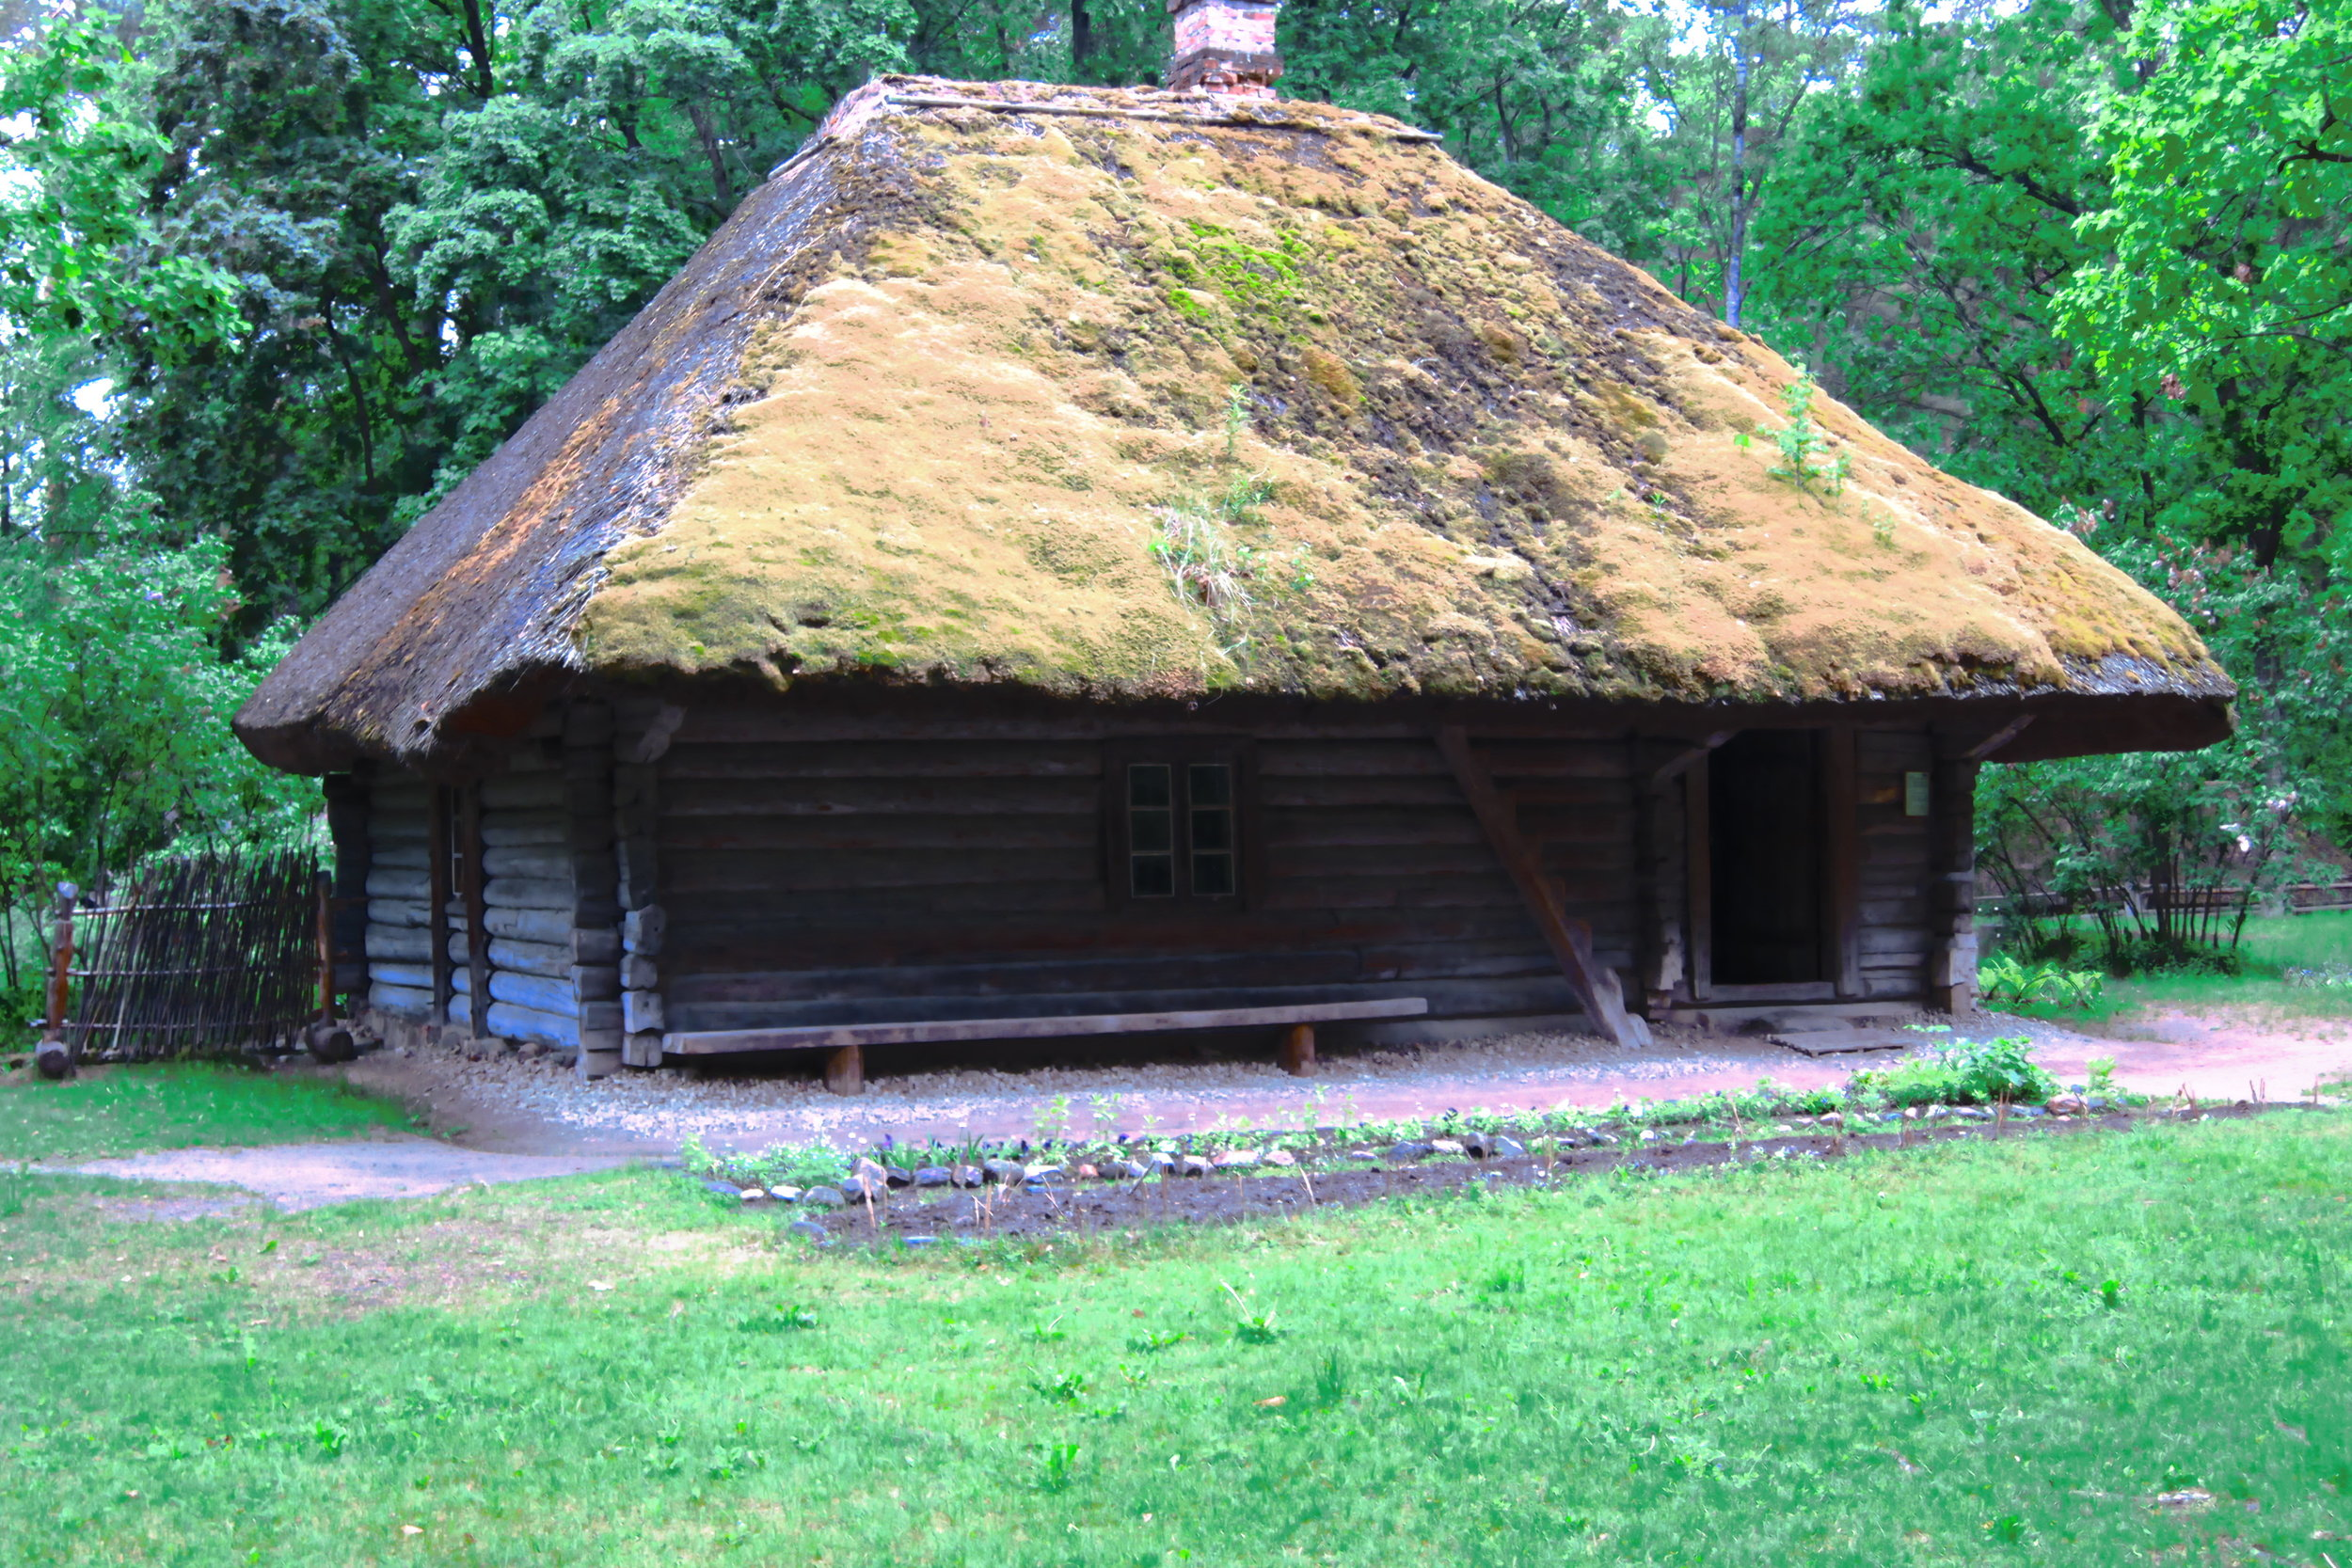 The Ethnographic Open-Air Museum of Latvia, 5/27/19